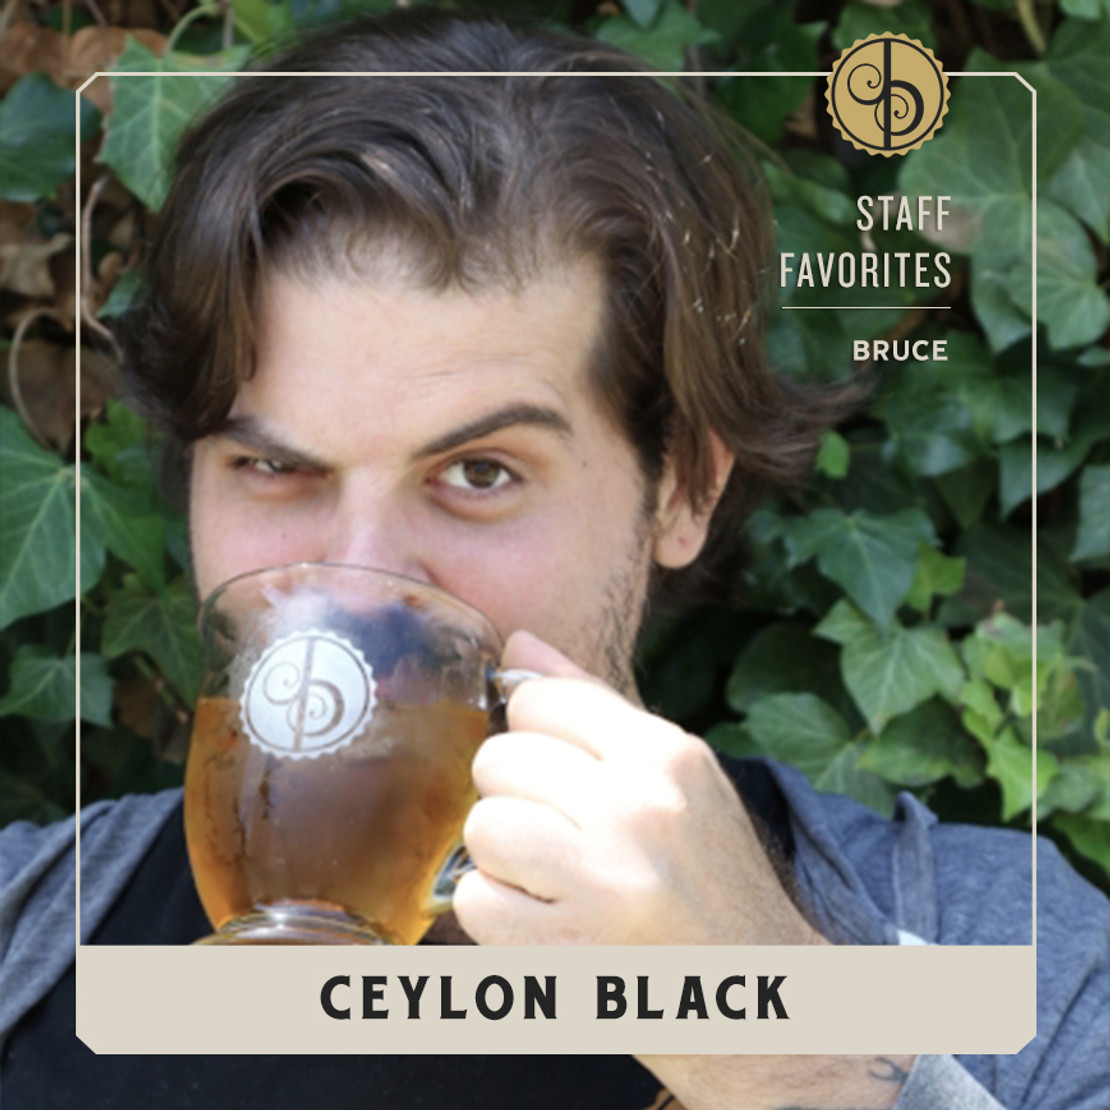 Staff Favorites: Bruce & Ceylon